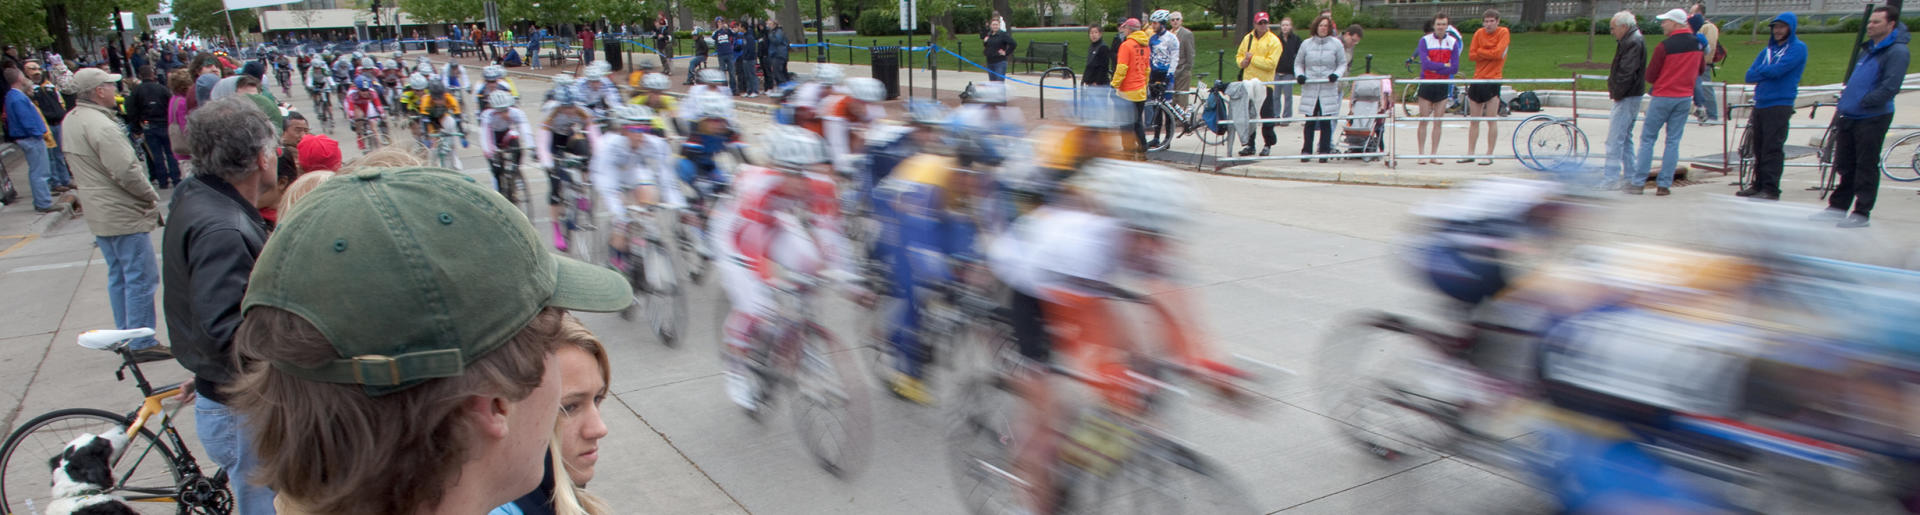 Bike Race in Madison